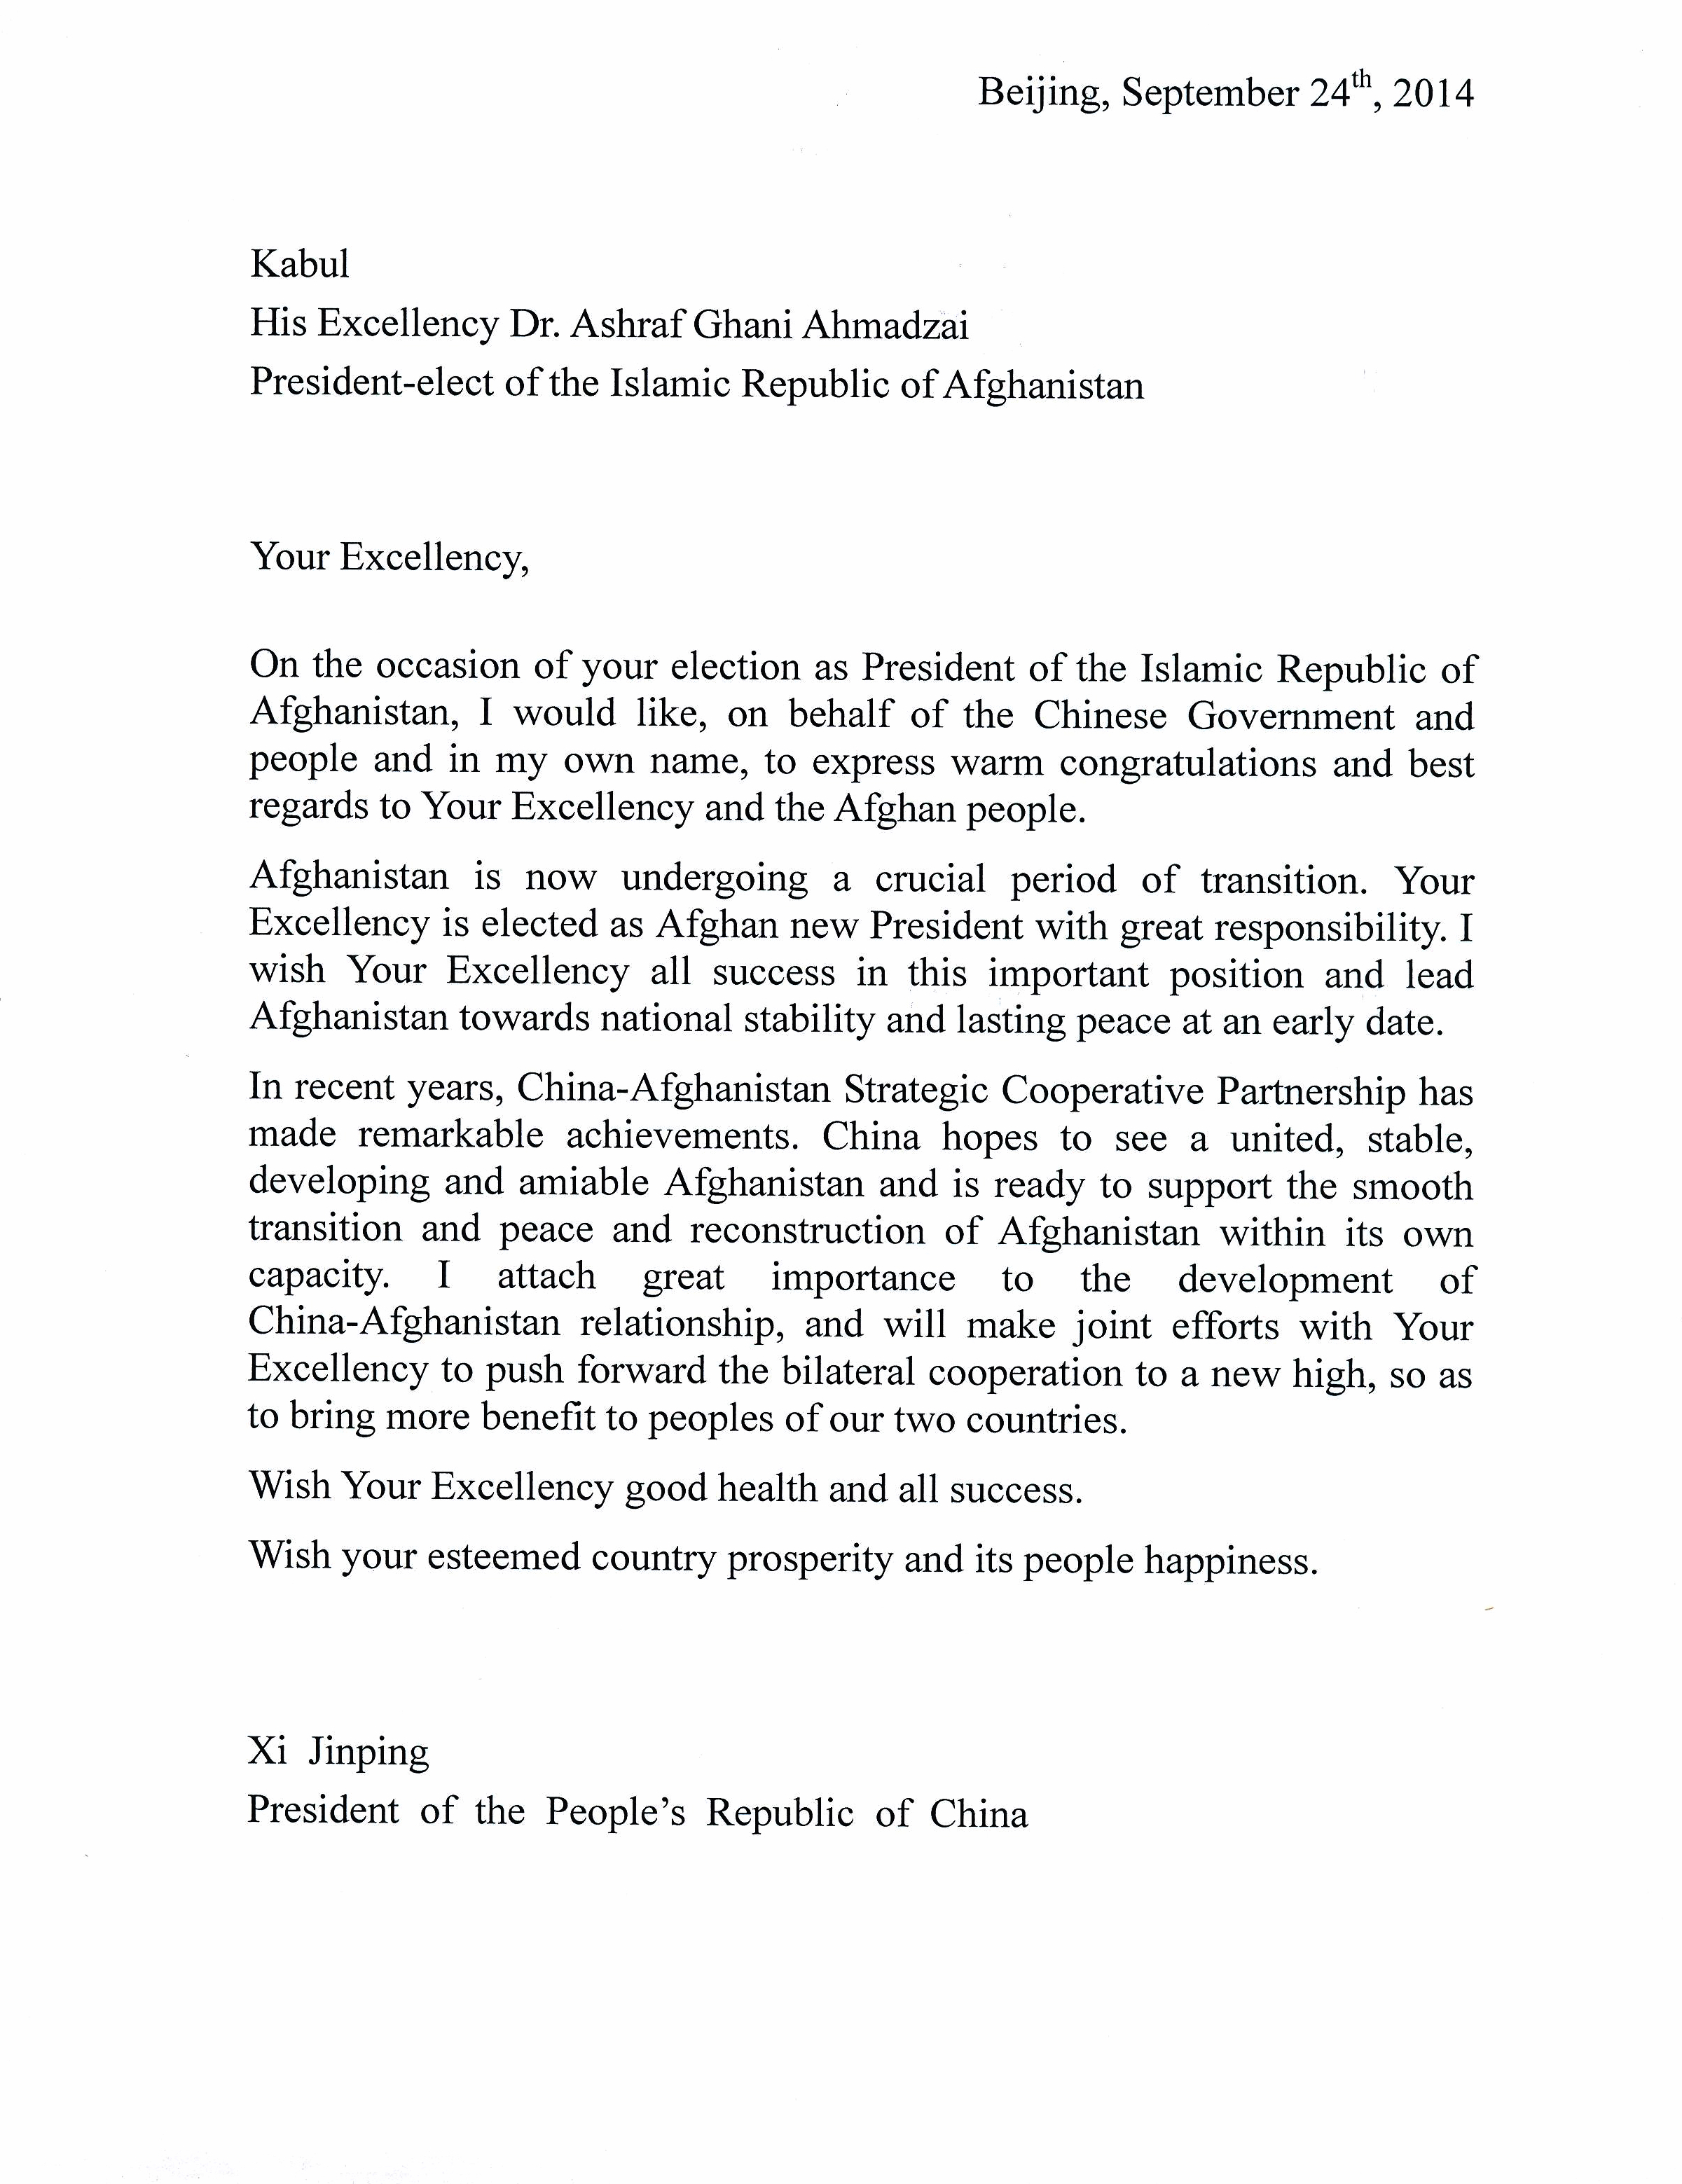 Chinese president xi jinping sends letter of congratulation to chinese president xi jinping sends letter of congratulation to ashraf ghani ahmadzai for his election as president of afghanistan thecheapjerseys Choice Image